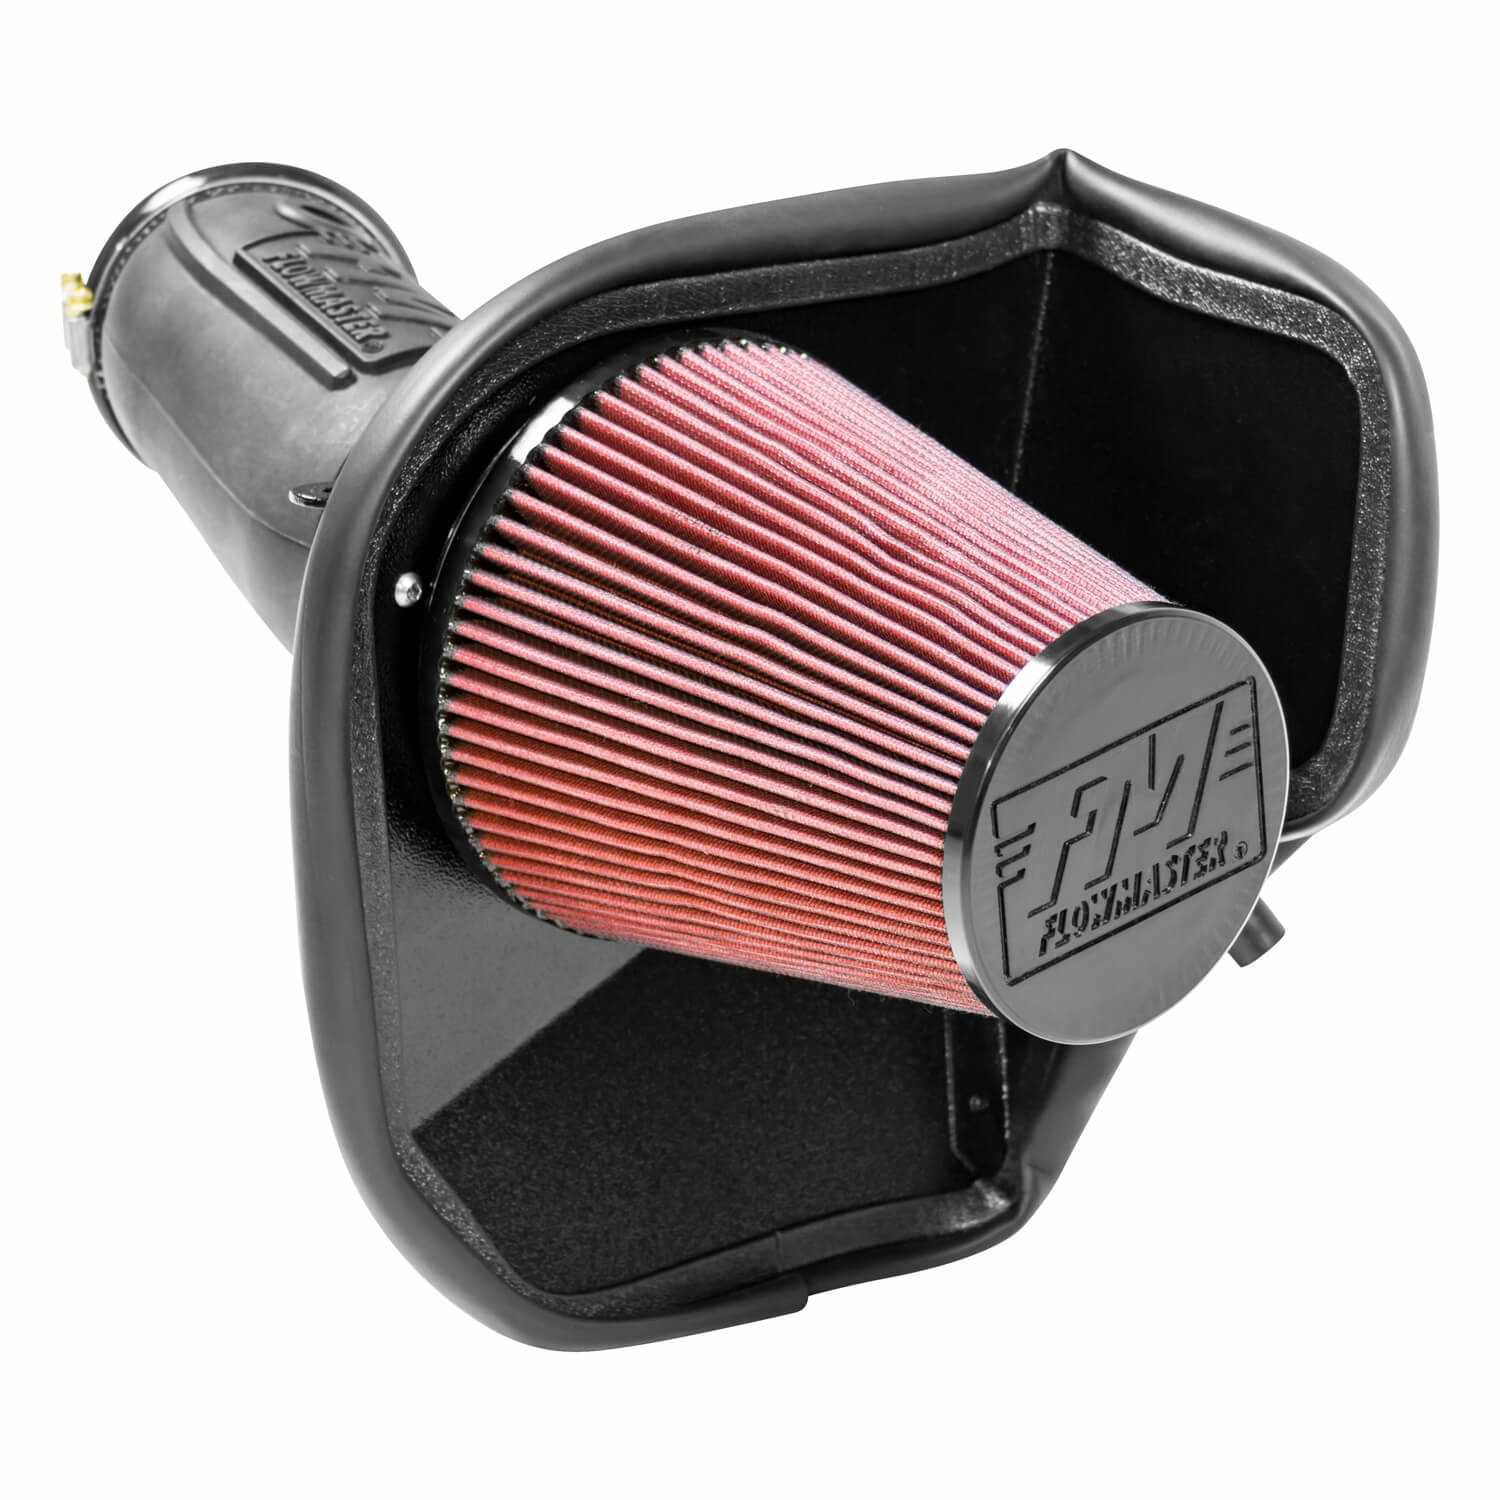 615139 Flowmaster Delta Force Cold Air Intake Kit